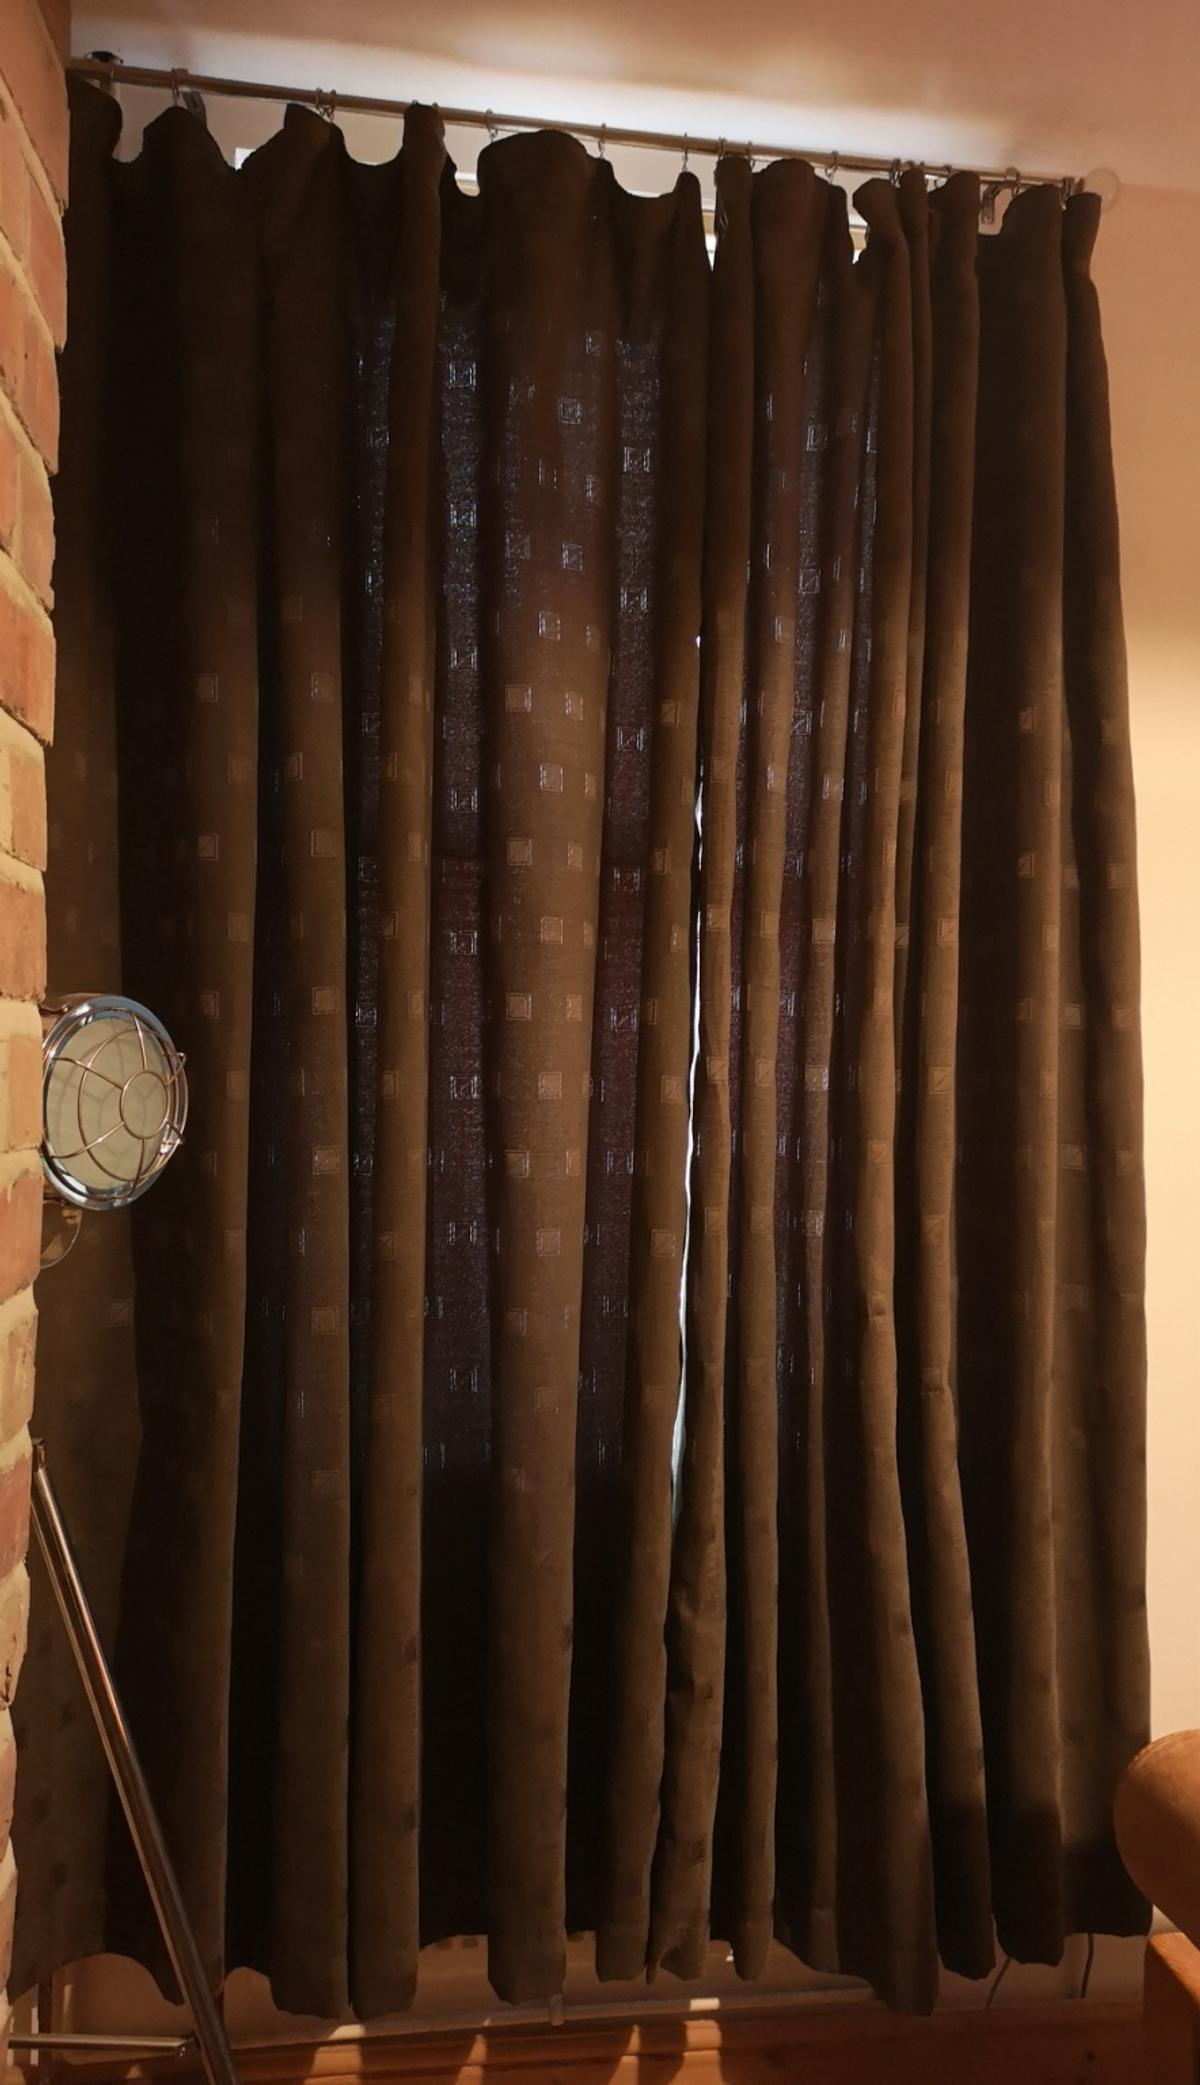 Free Extra Long Dark Brown Dunelm Curtains In De24 Derby For Free For Sale Shpock